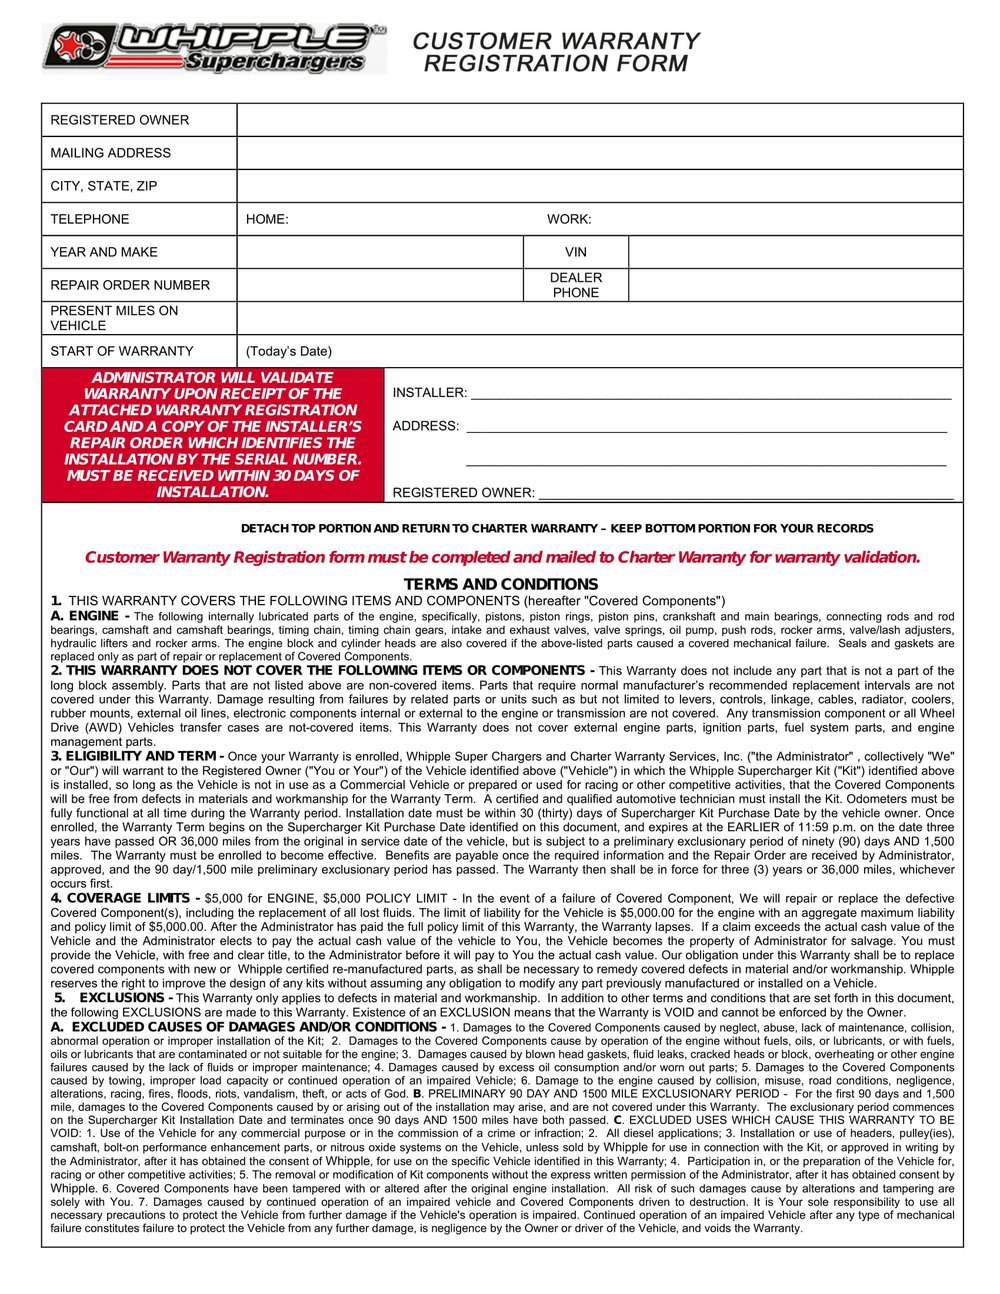 Steeda Performance Vehicle Warranty Document - North America Only-10.jpg